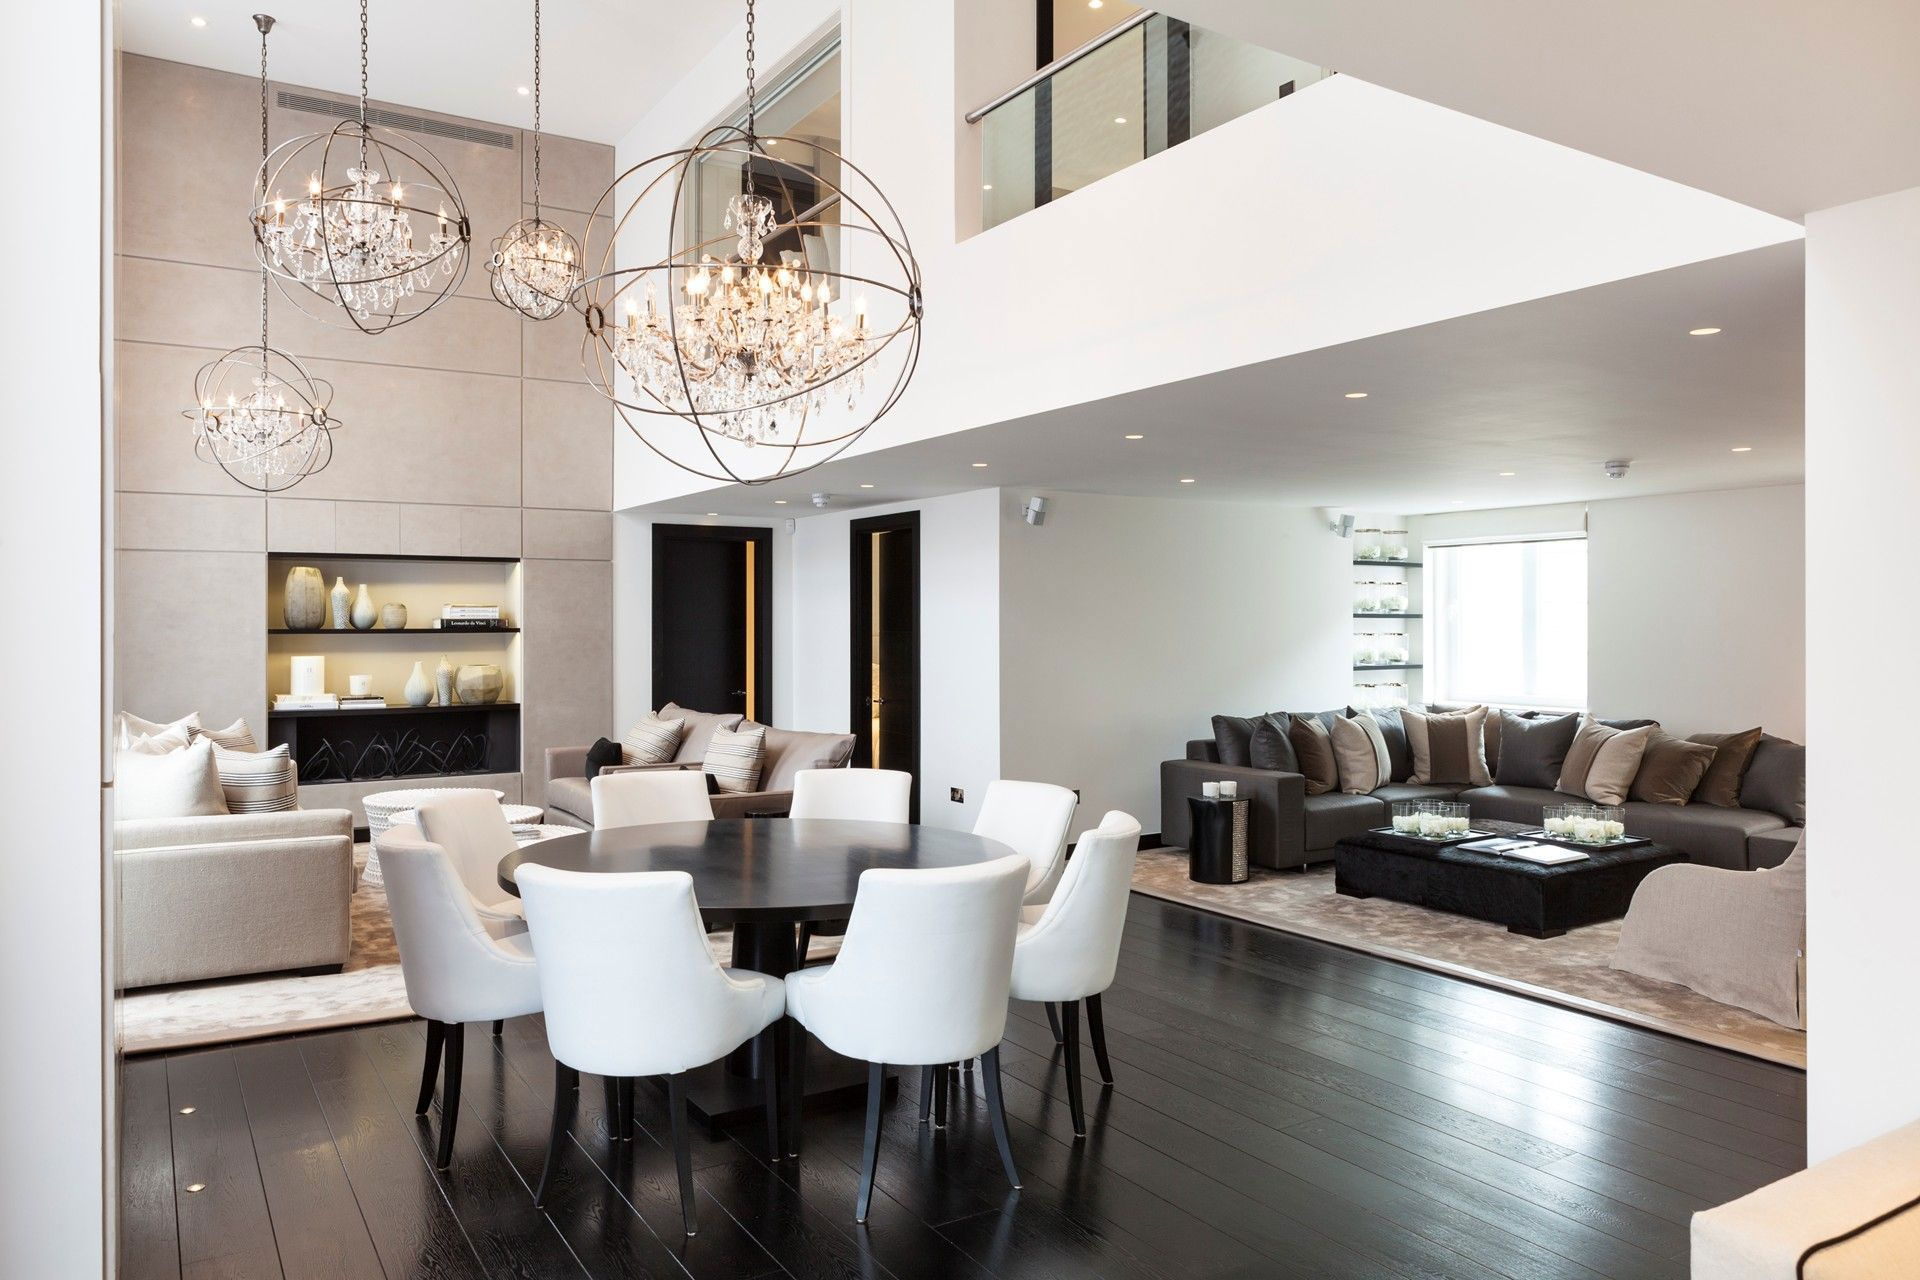 kitchen table chandelier Elegant Chandeliers Dining Table Living Space Open Plan Henrietta Street Apartment